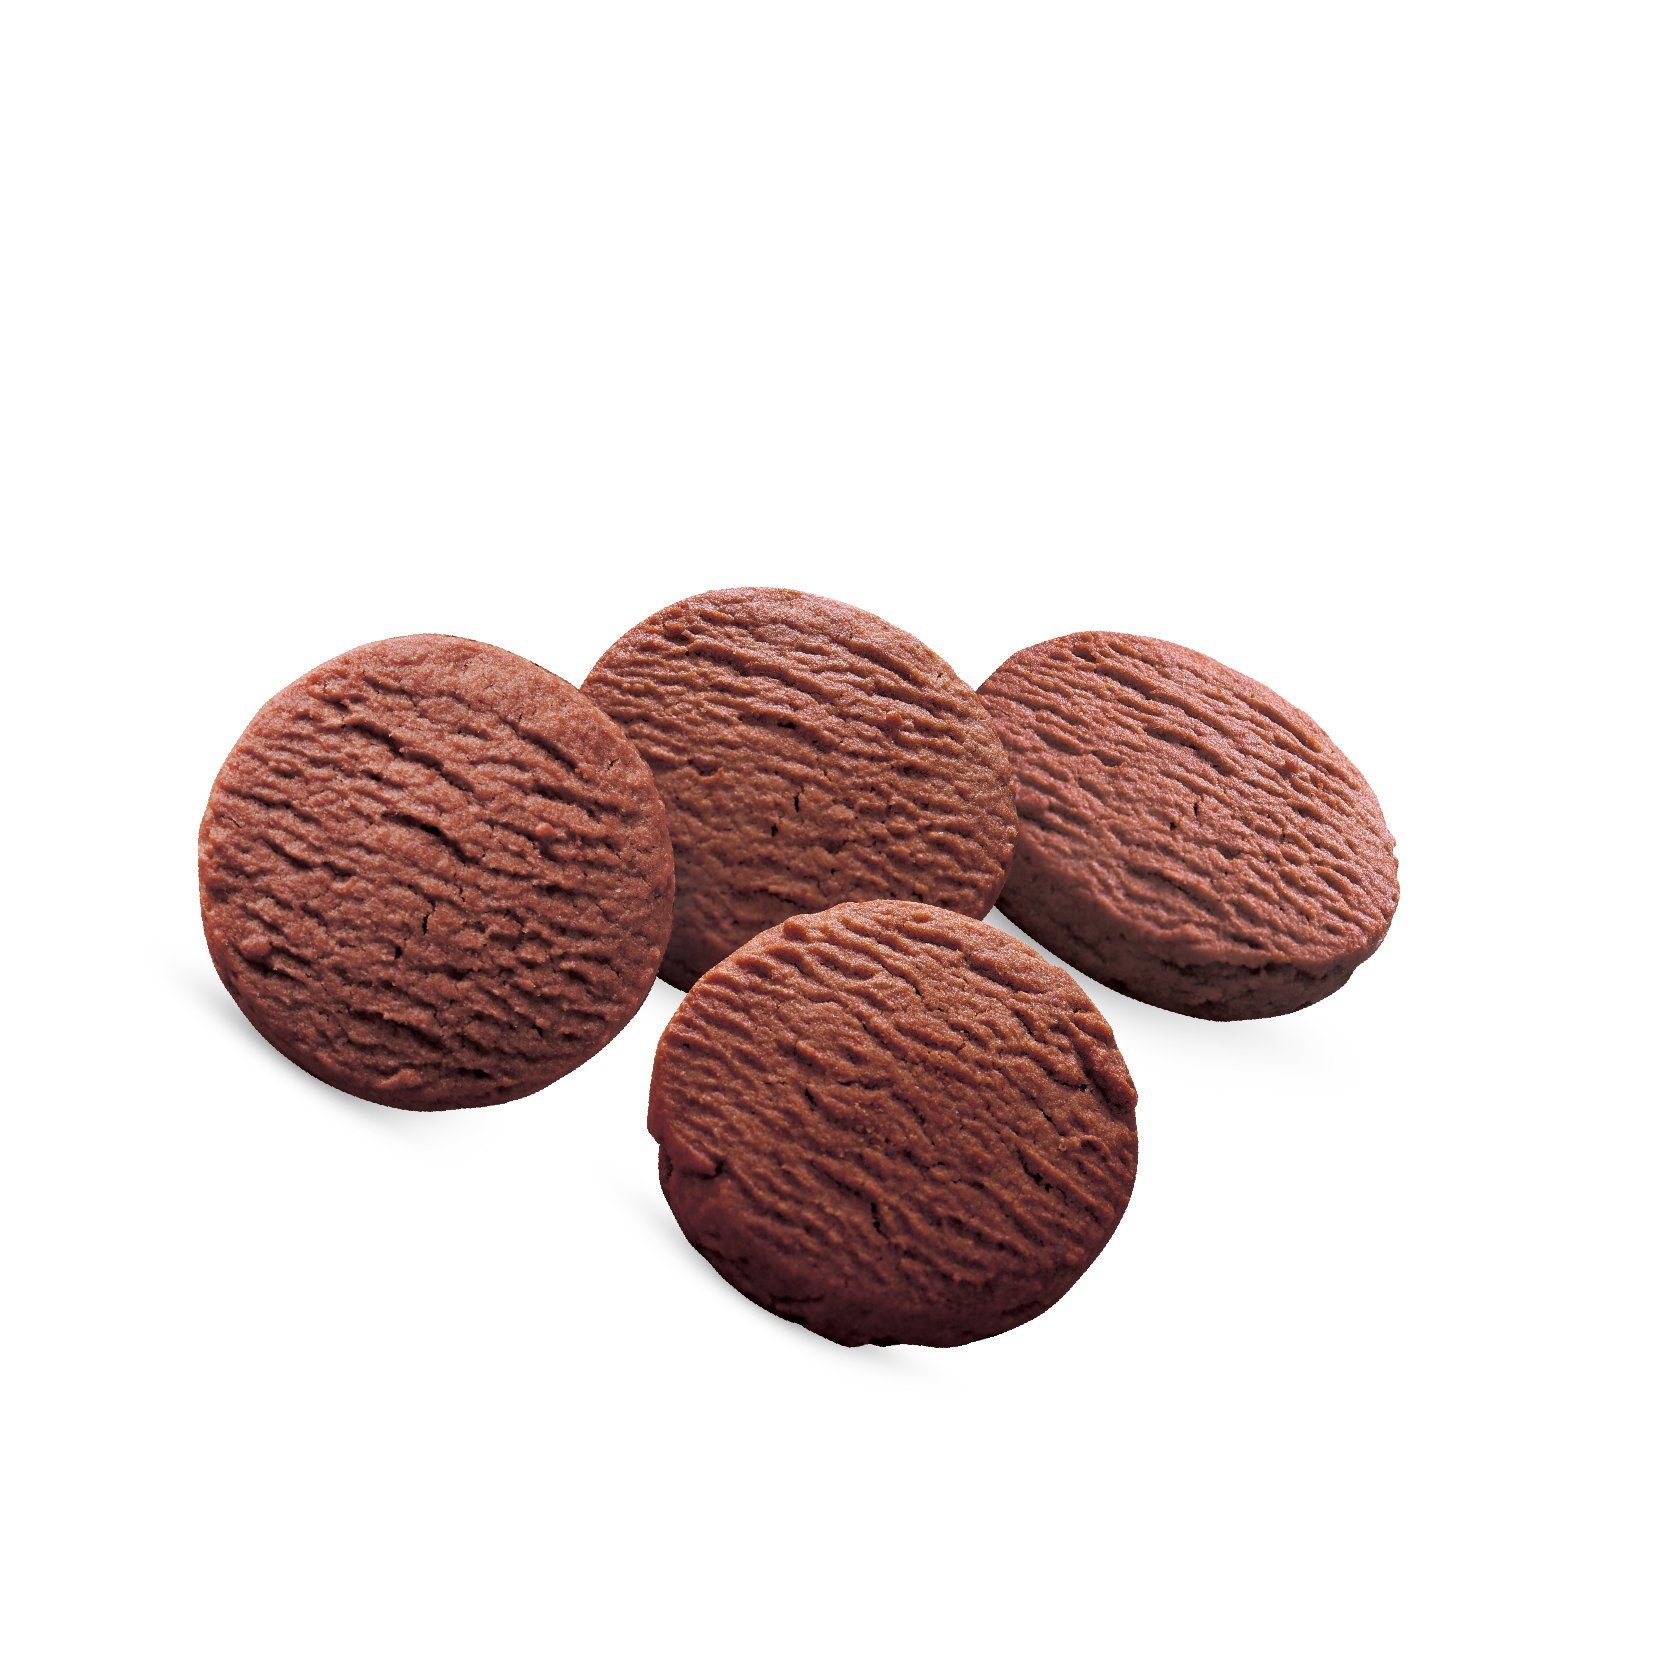 Chocolate Butter Cookies 82g